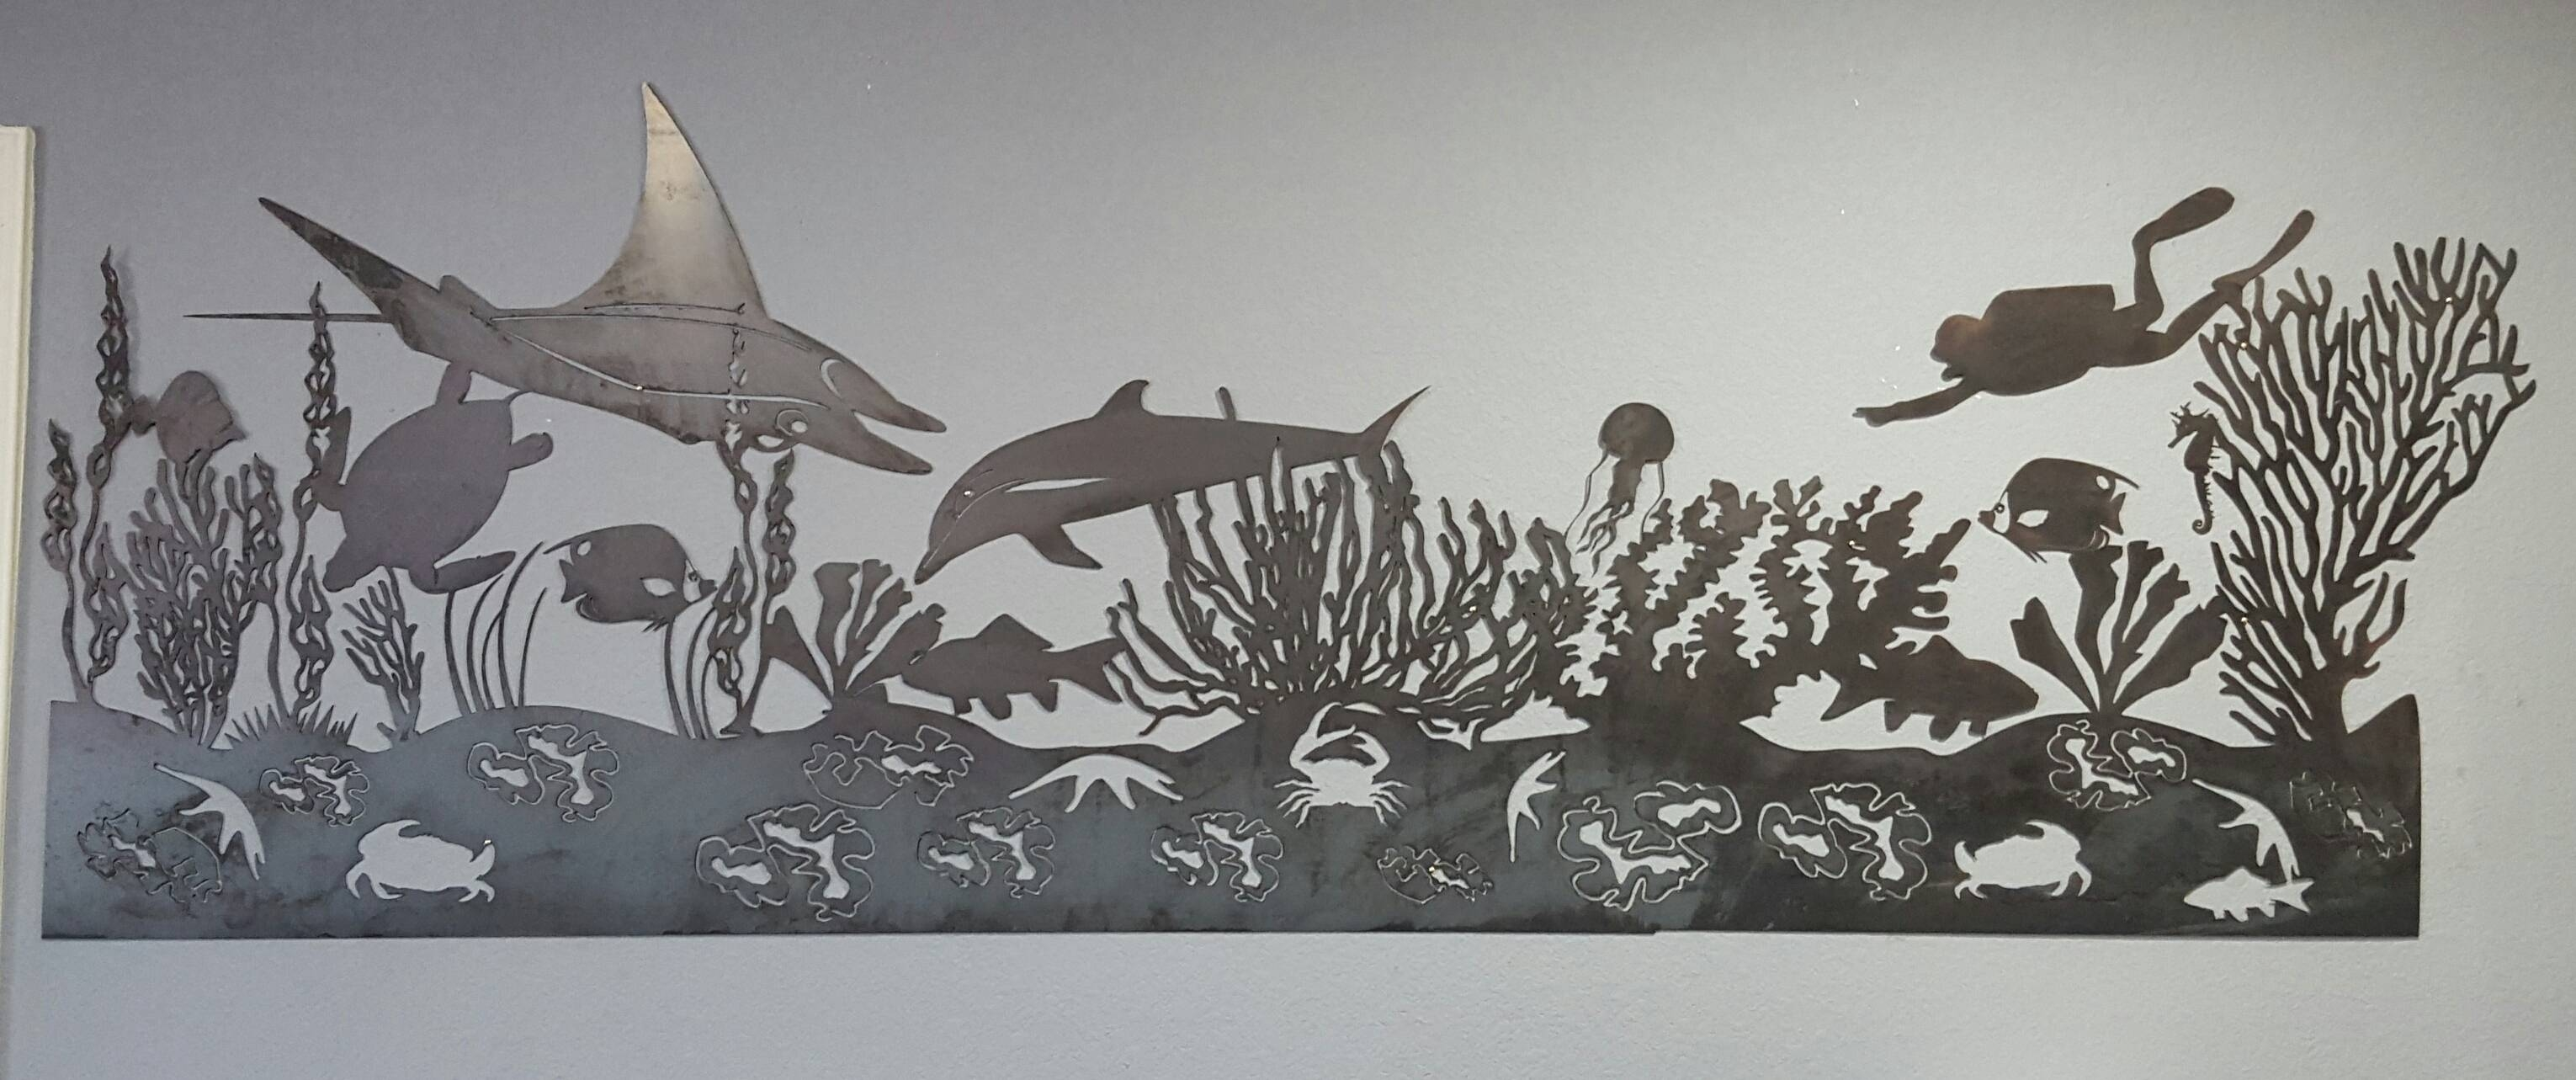 Sea Life Mural Metal Wall Art | Blue Collar Welding Llc Inside Best And Newest Animal Metal Wall Art (View 5 of 20)